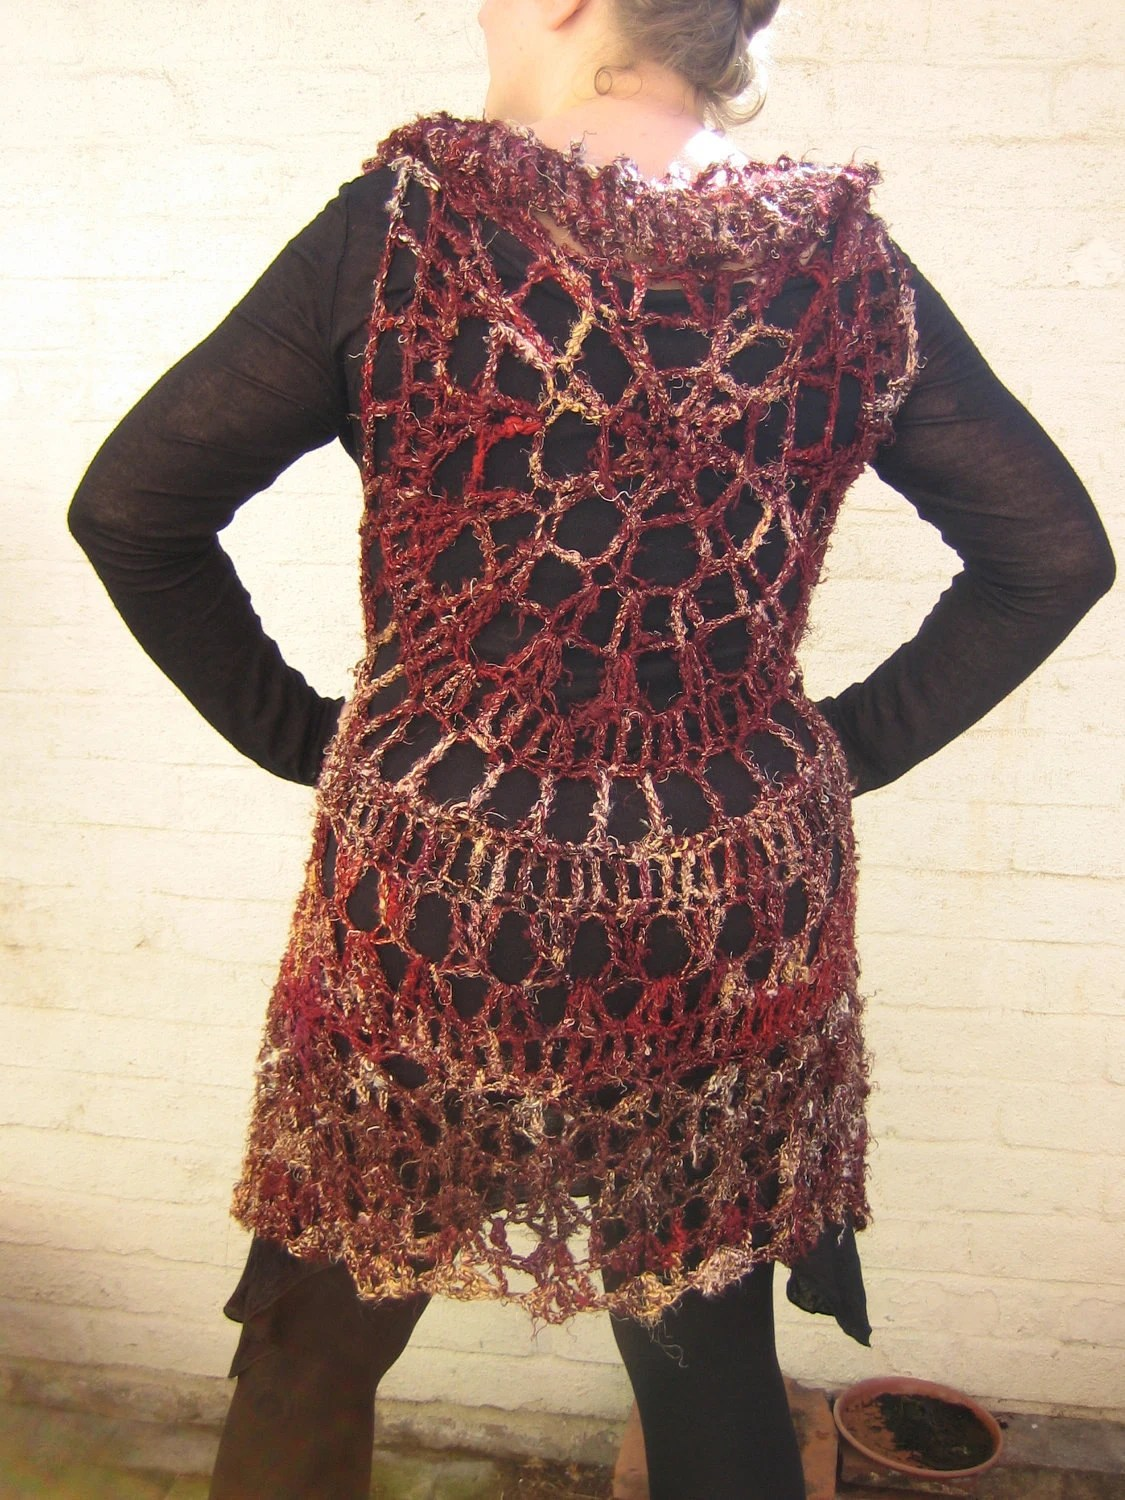 Crocheted vest mandala boho style/ longline sleeveless jacket/ cardigan 'Ripple' One Of A Kind, Pure Silk Wearable Art, Size L